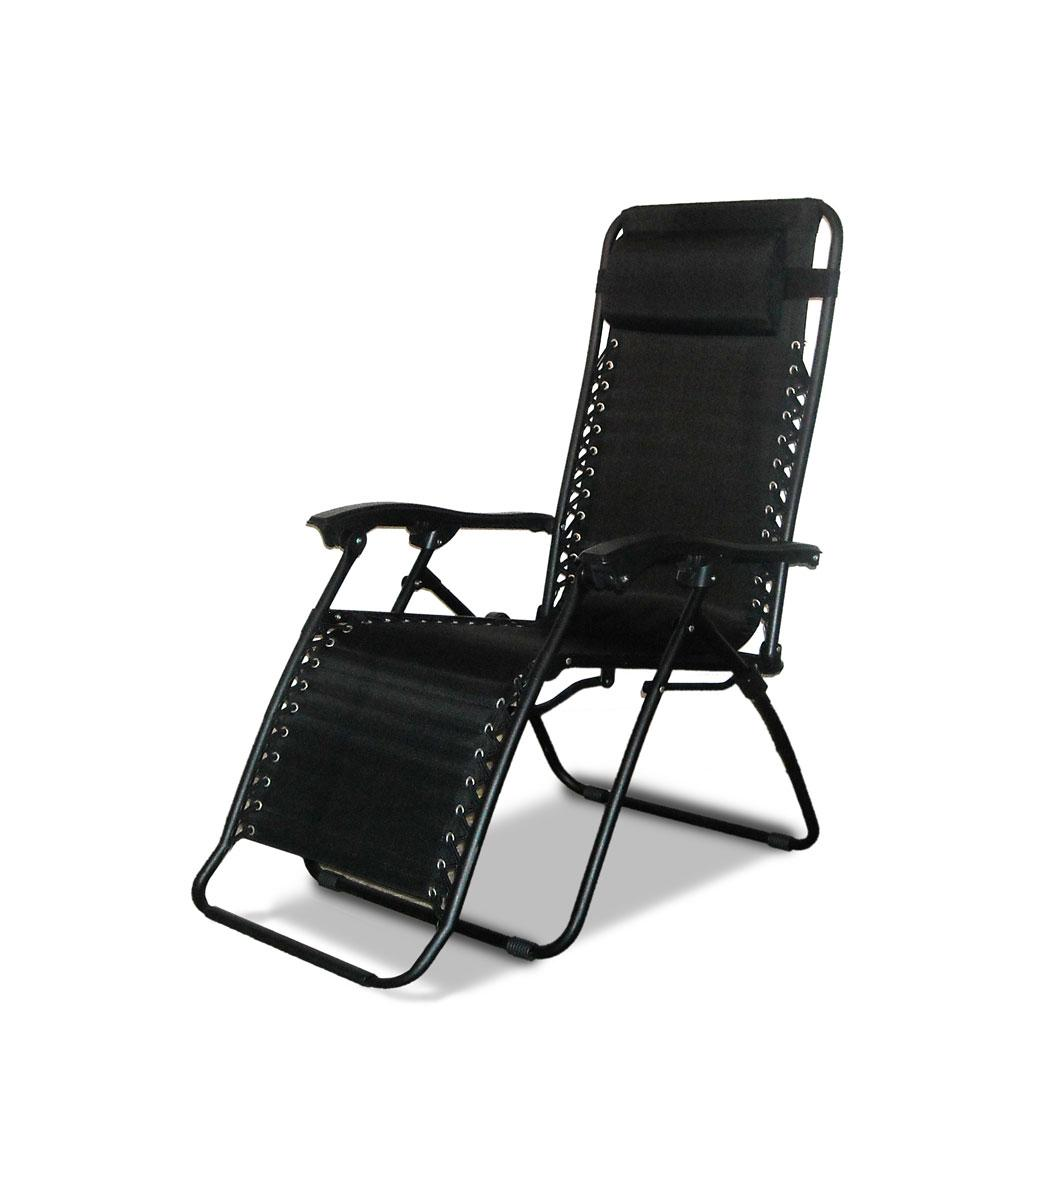 Exceptionnel Caravan Canopy Black Zero Gravity Chair